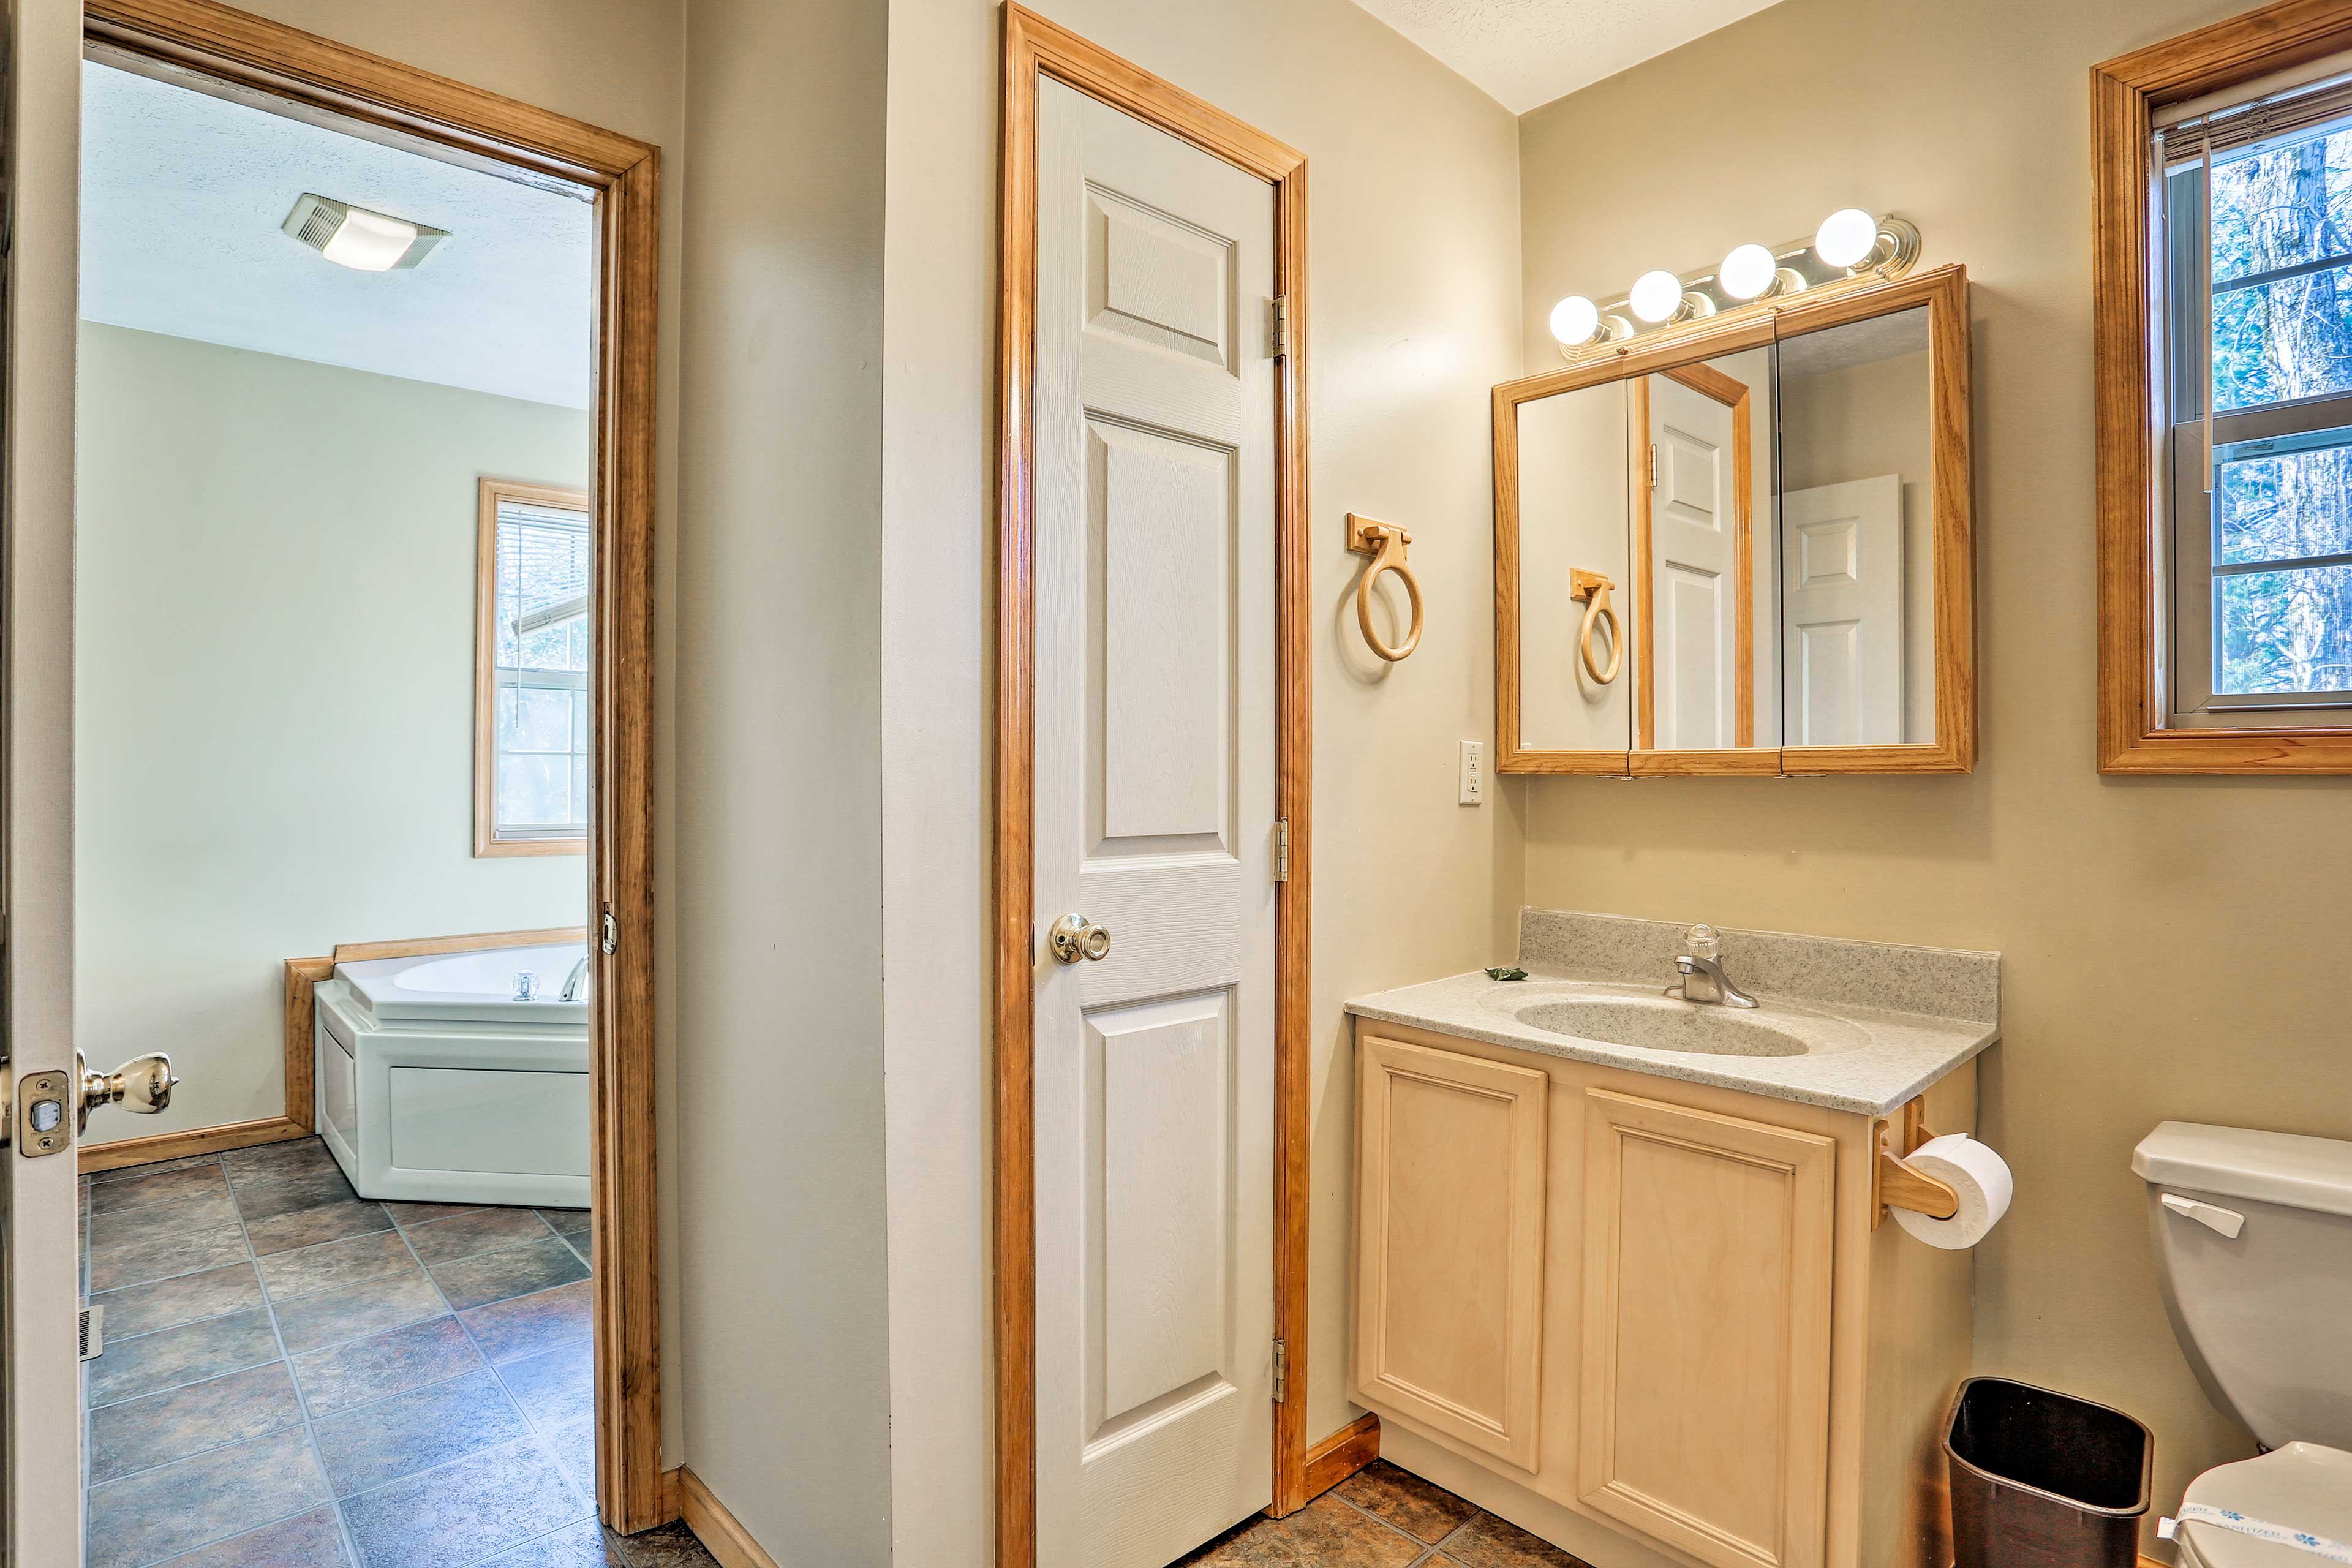 This home features a total of 3 bathrooms.